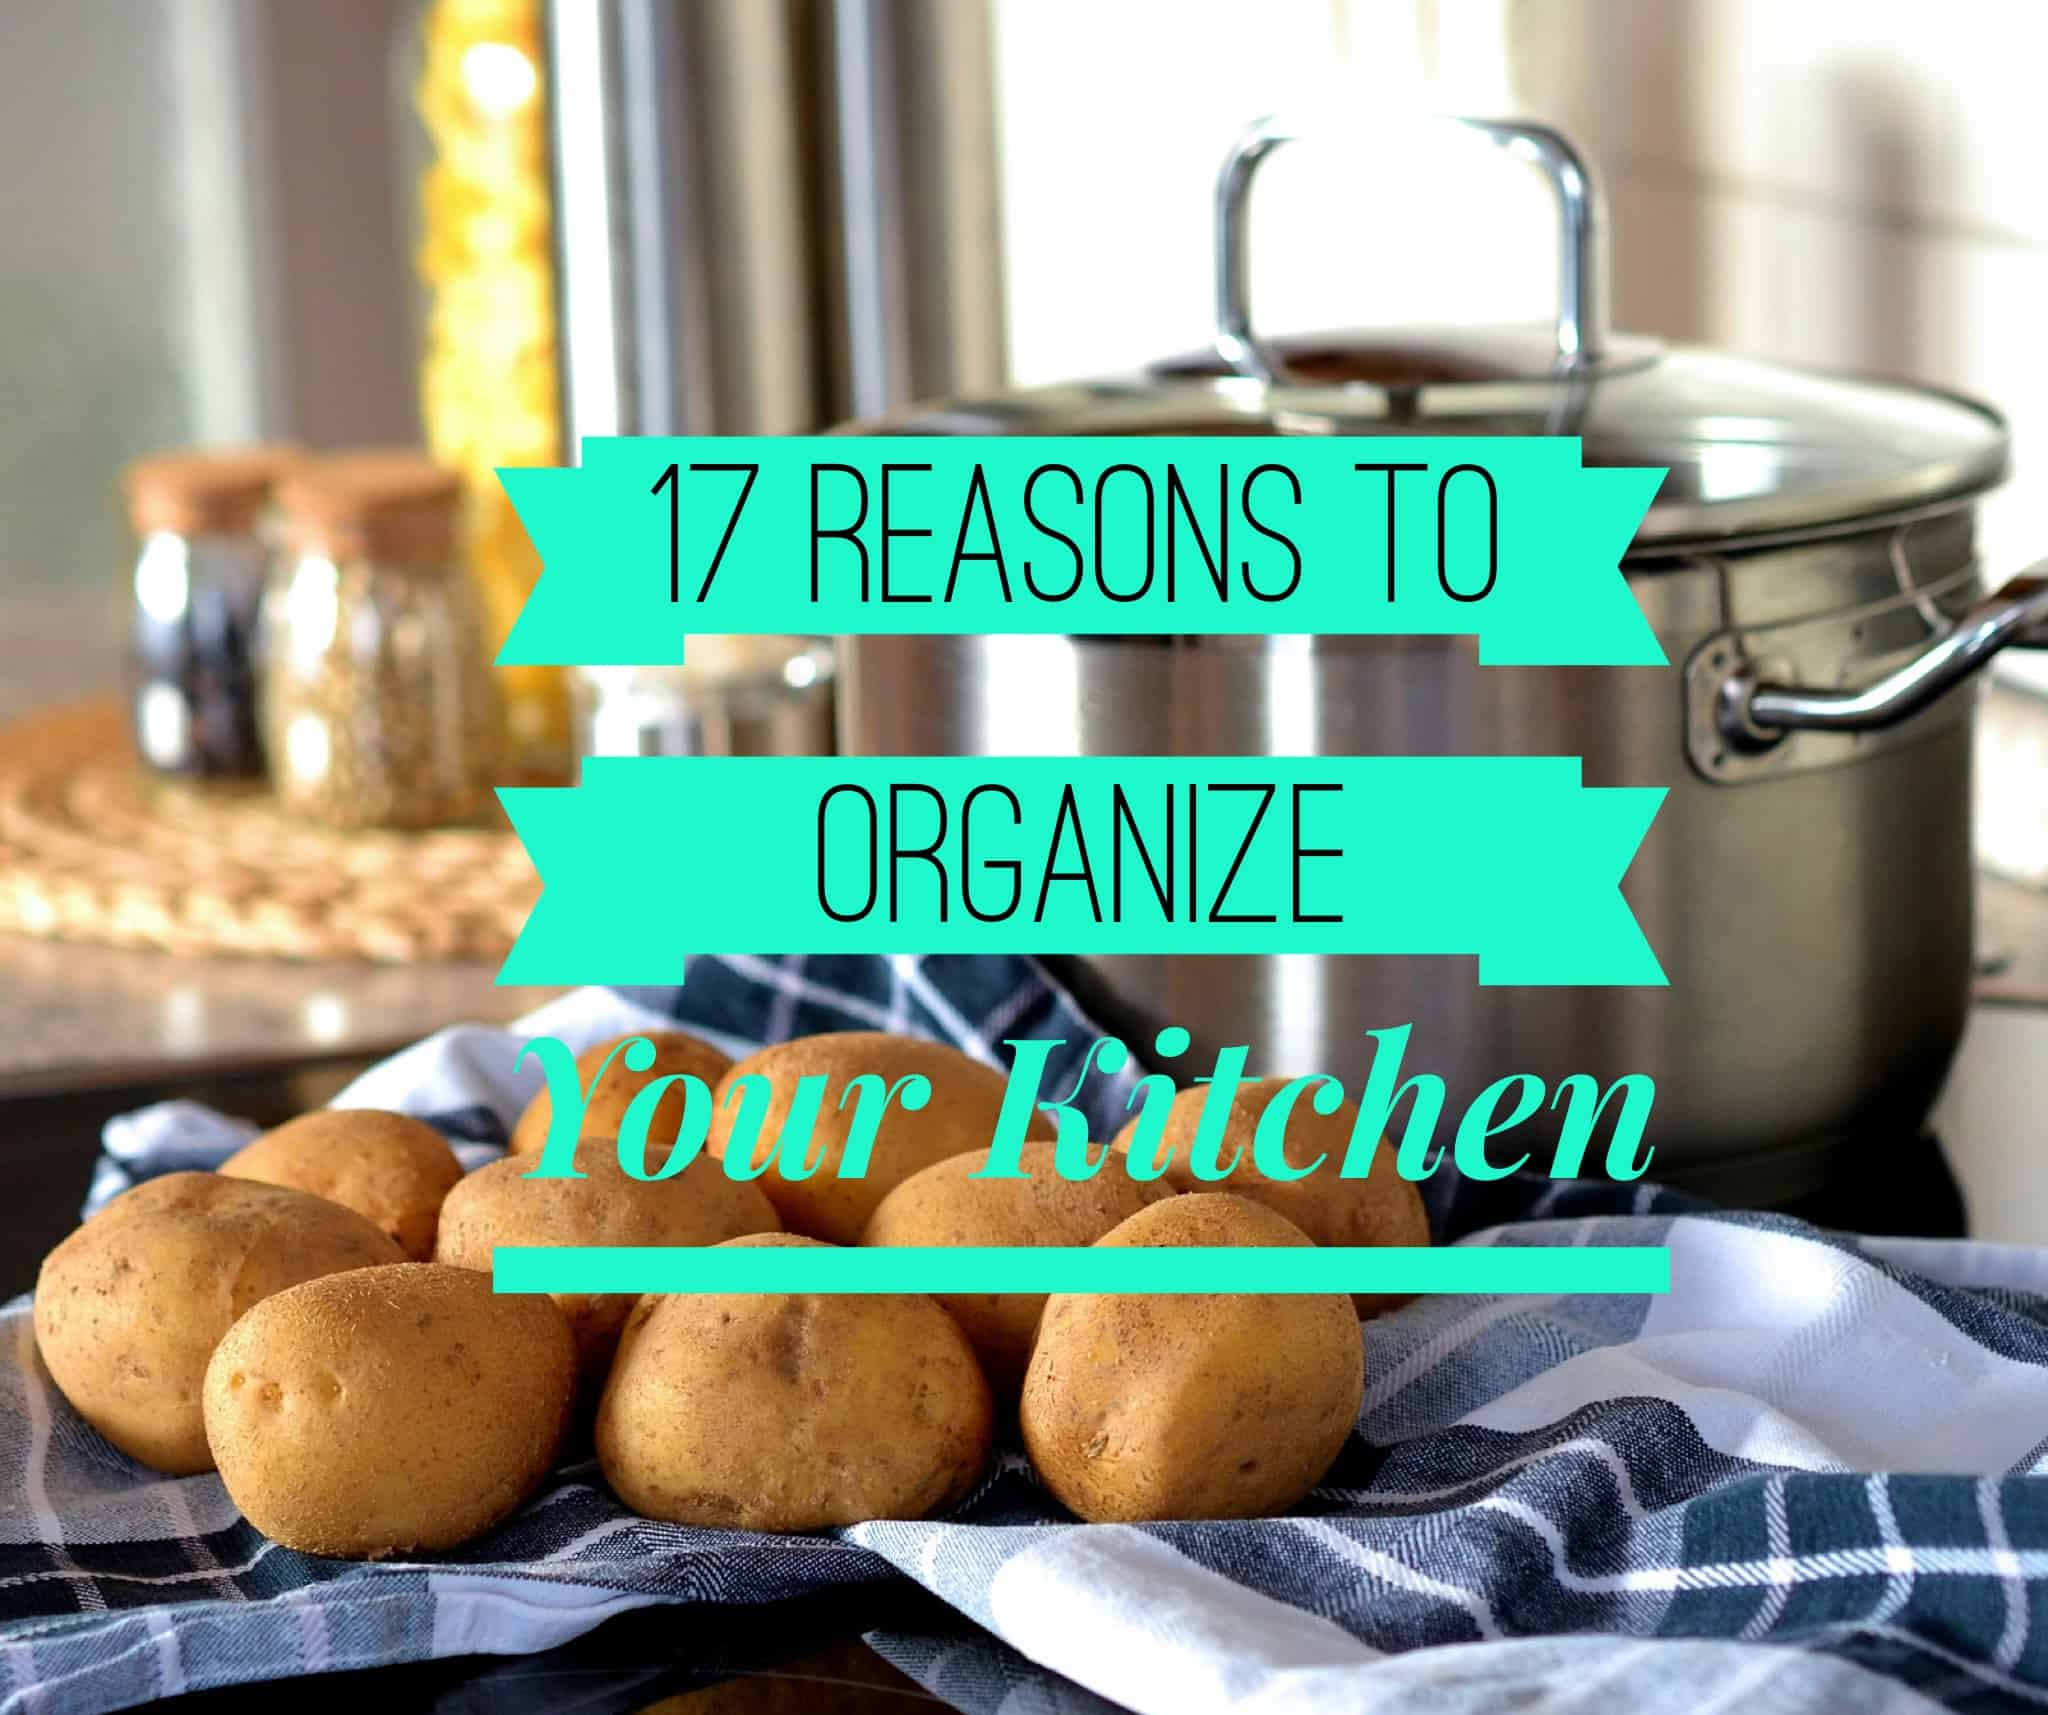 17 Reasons to Organize Your Kitchen | On Task Organizing